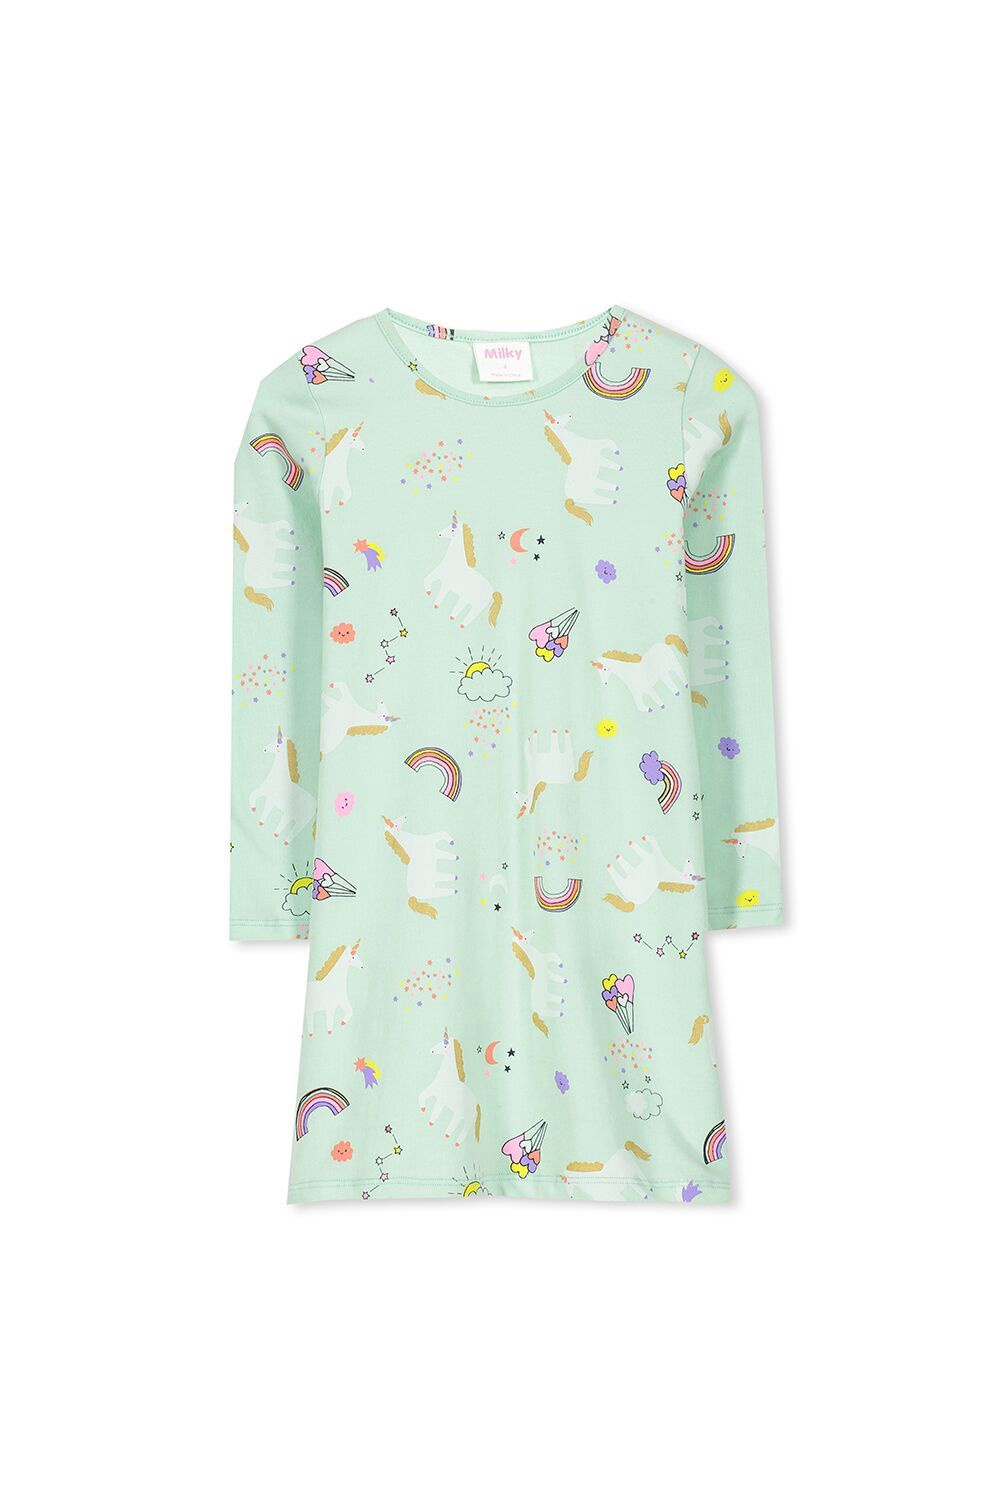 Milky UNICORN NIGHTIE